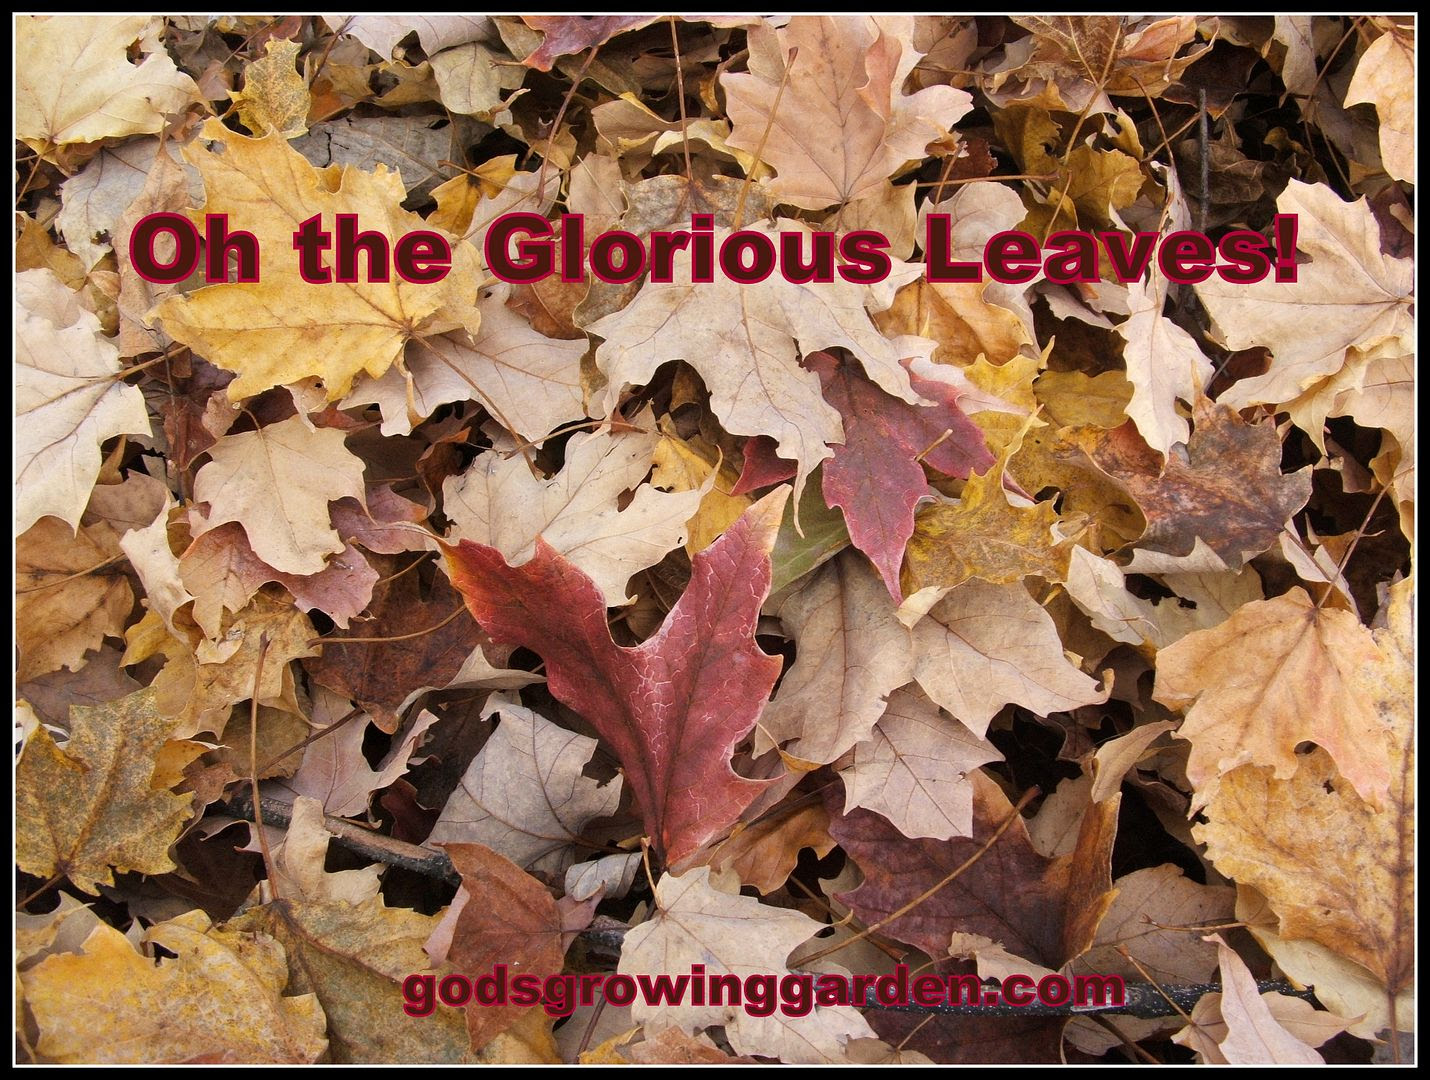 Glorious Leaves by Angie Ouellette-Tower for godsgrowinggarden.com photo 004_zps5cd8848d.jpg